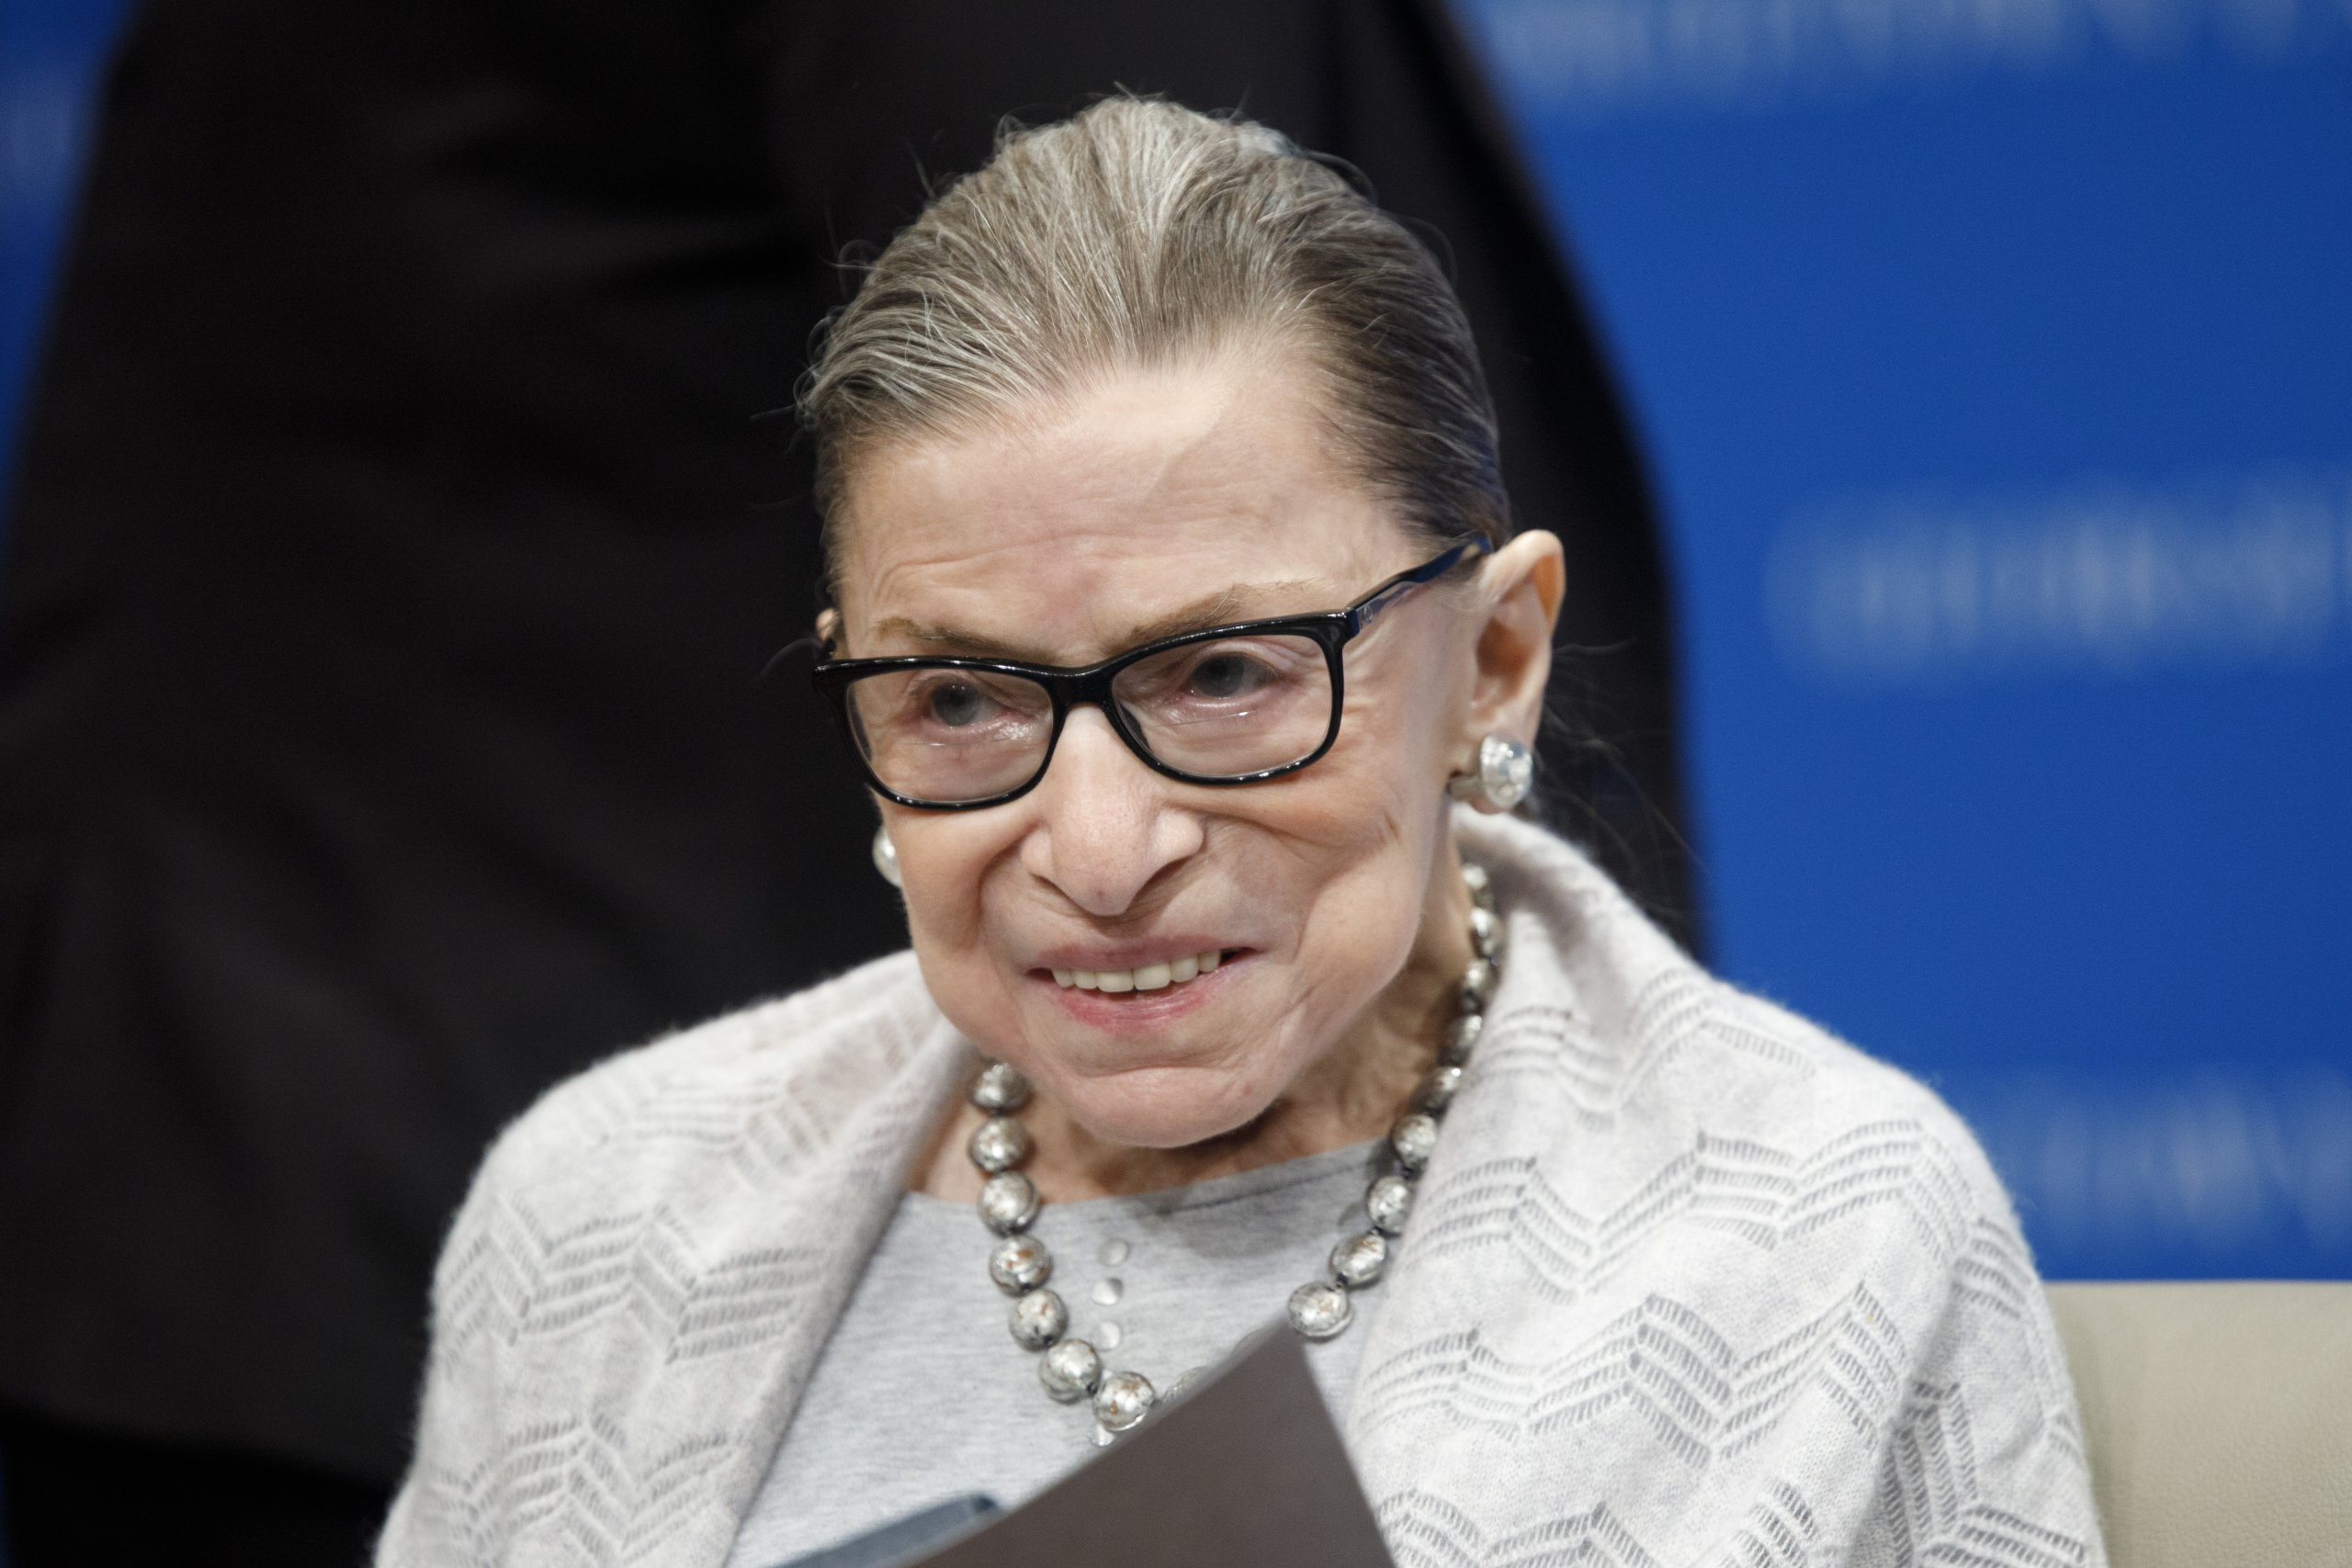 Iowa political leaders respond to news of Justice Ruth Bader Ginsburg's death